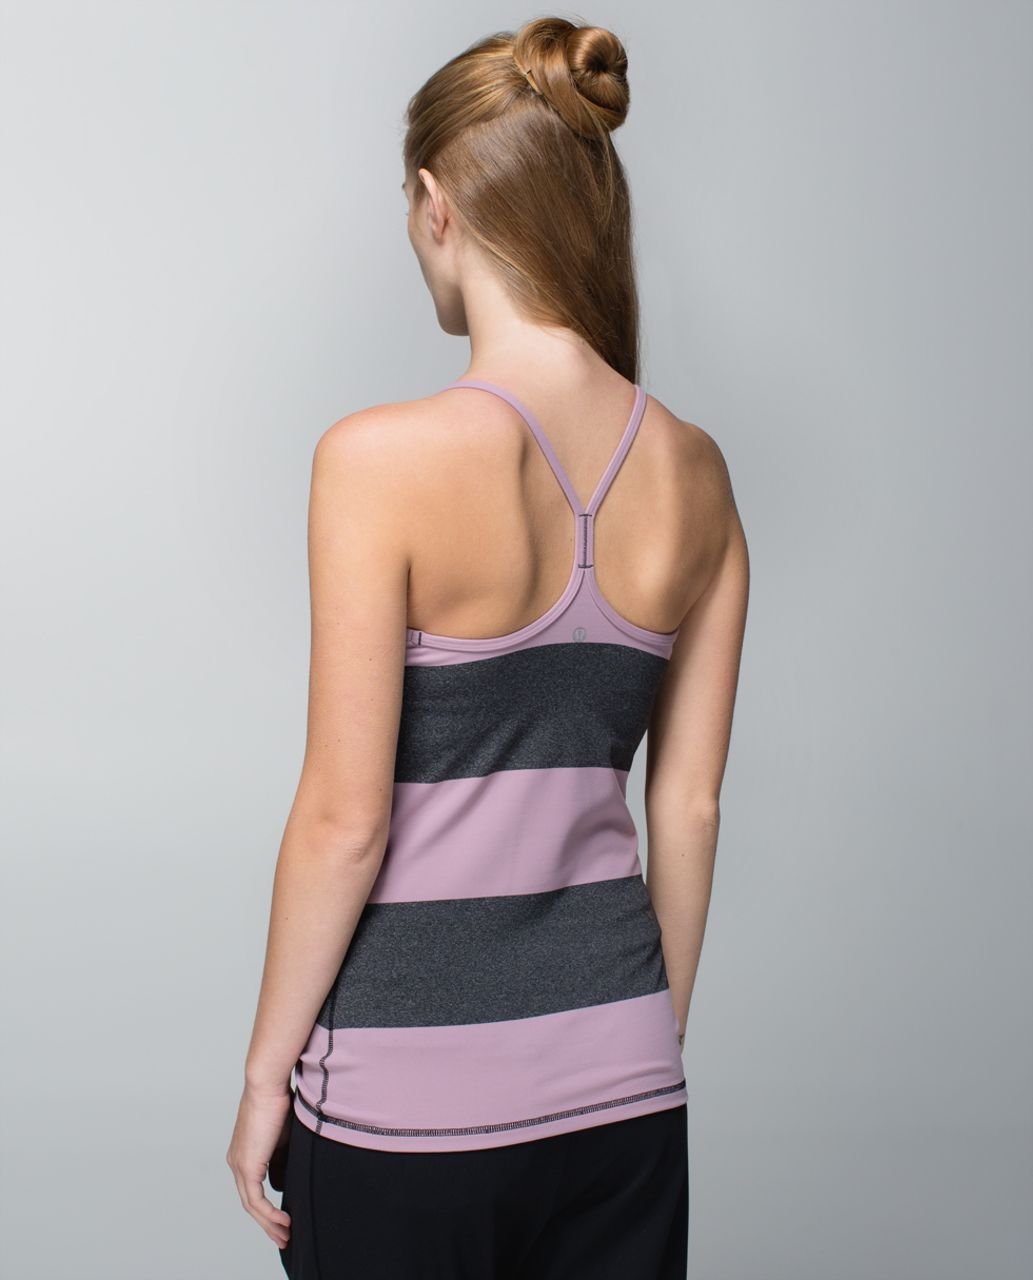 Lululemon Power Y Tank *Luon - Bold Stripe Mauvelous Heathered Black / Mauvelous